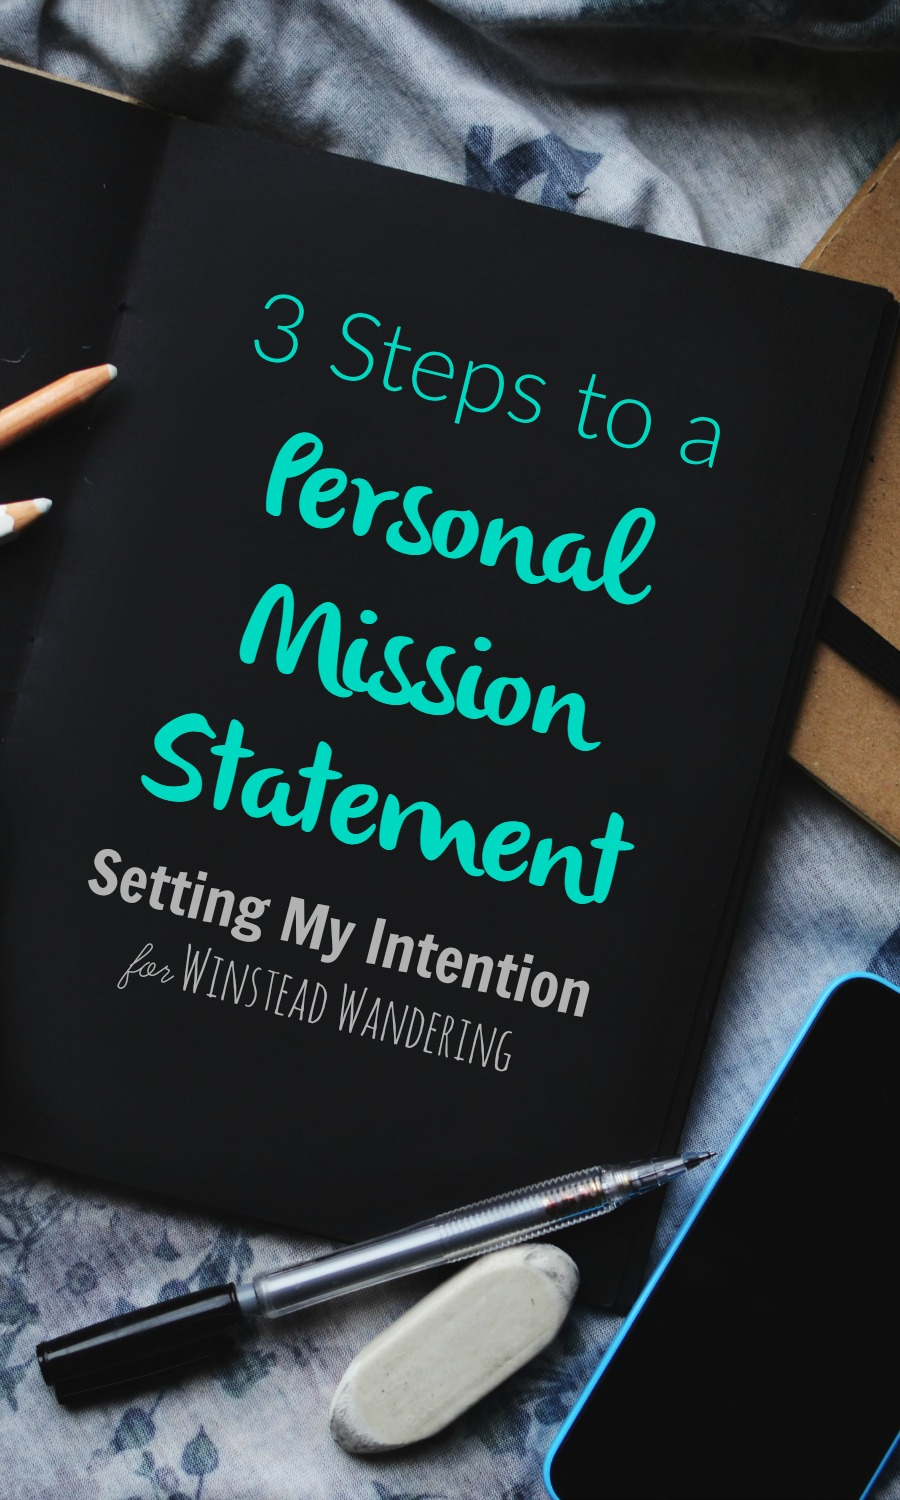 Whether you're a mom, a blogger, a wife, or all or none of the above, you can ditch that overloaded to-do list and follow these 3 steps to a personal mission statement.